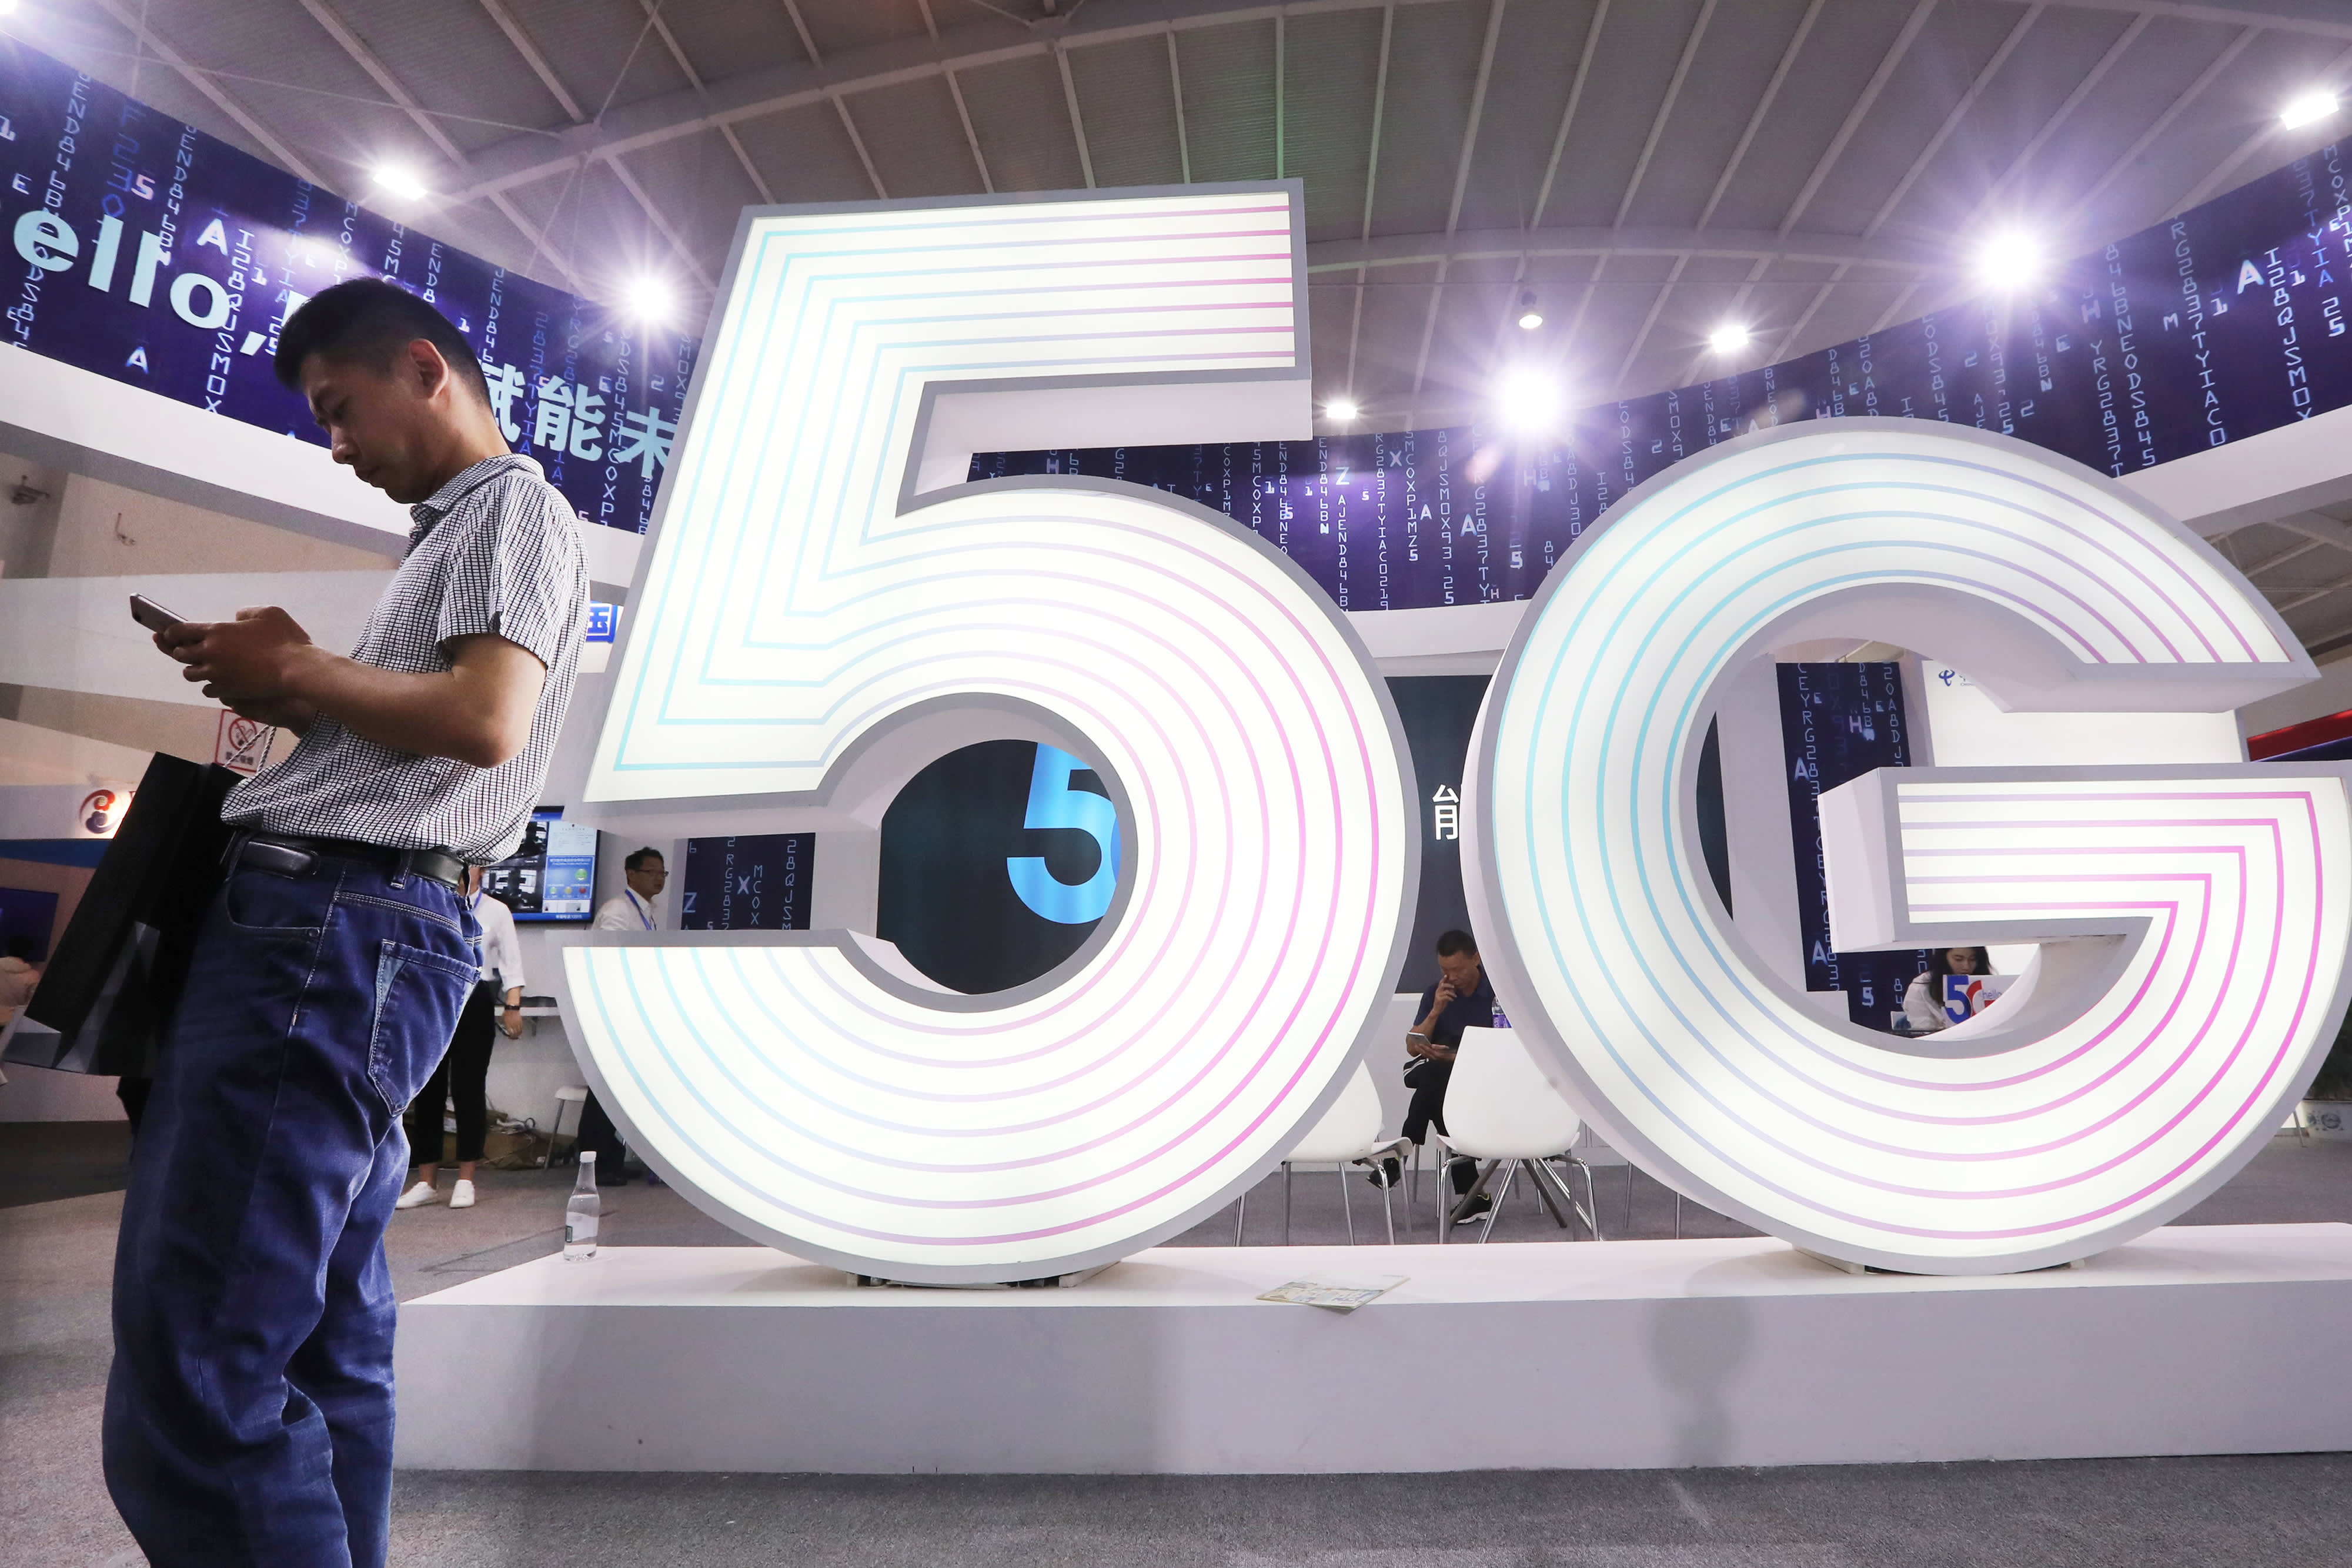 You don't need to buy a 5G phone, and probably won't for a few years